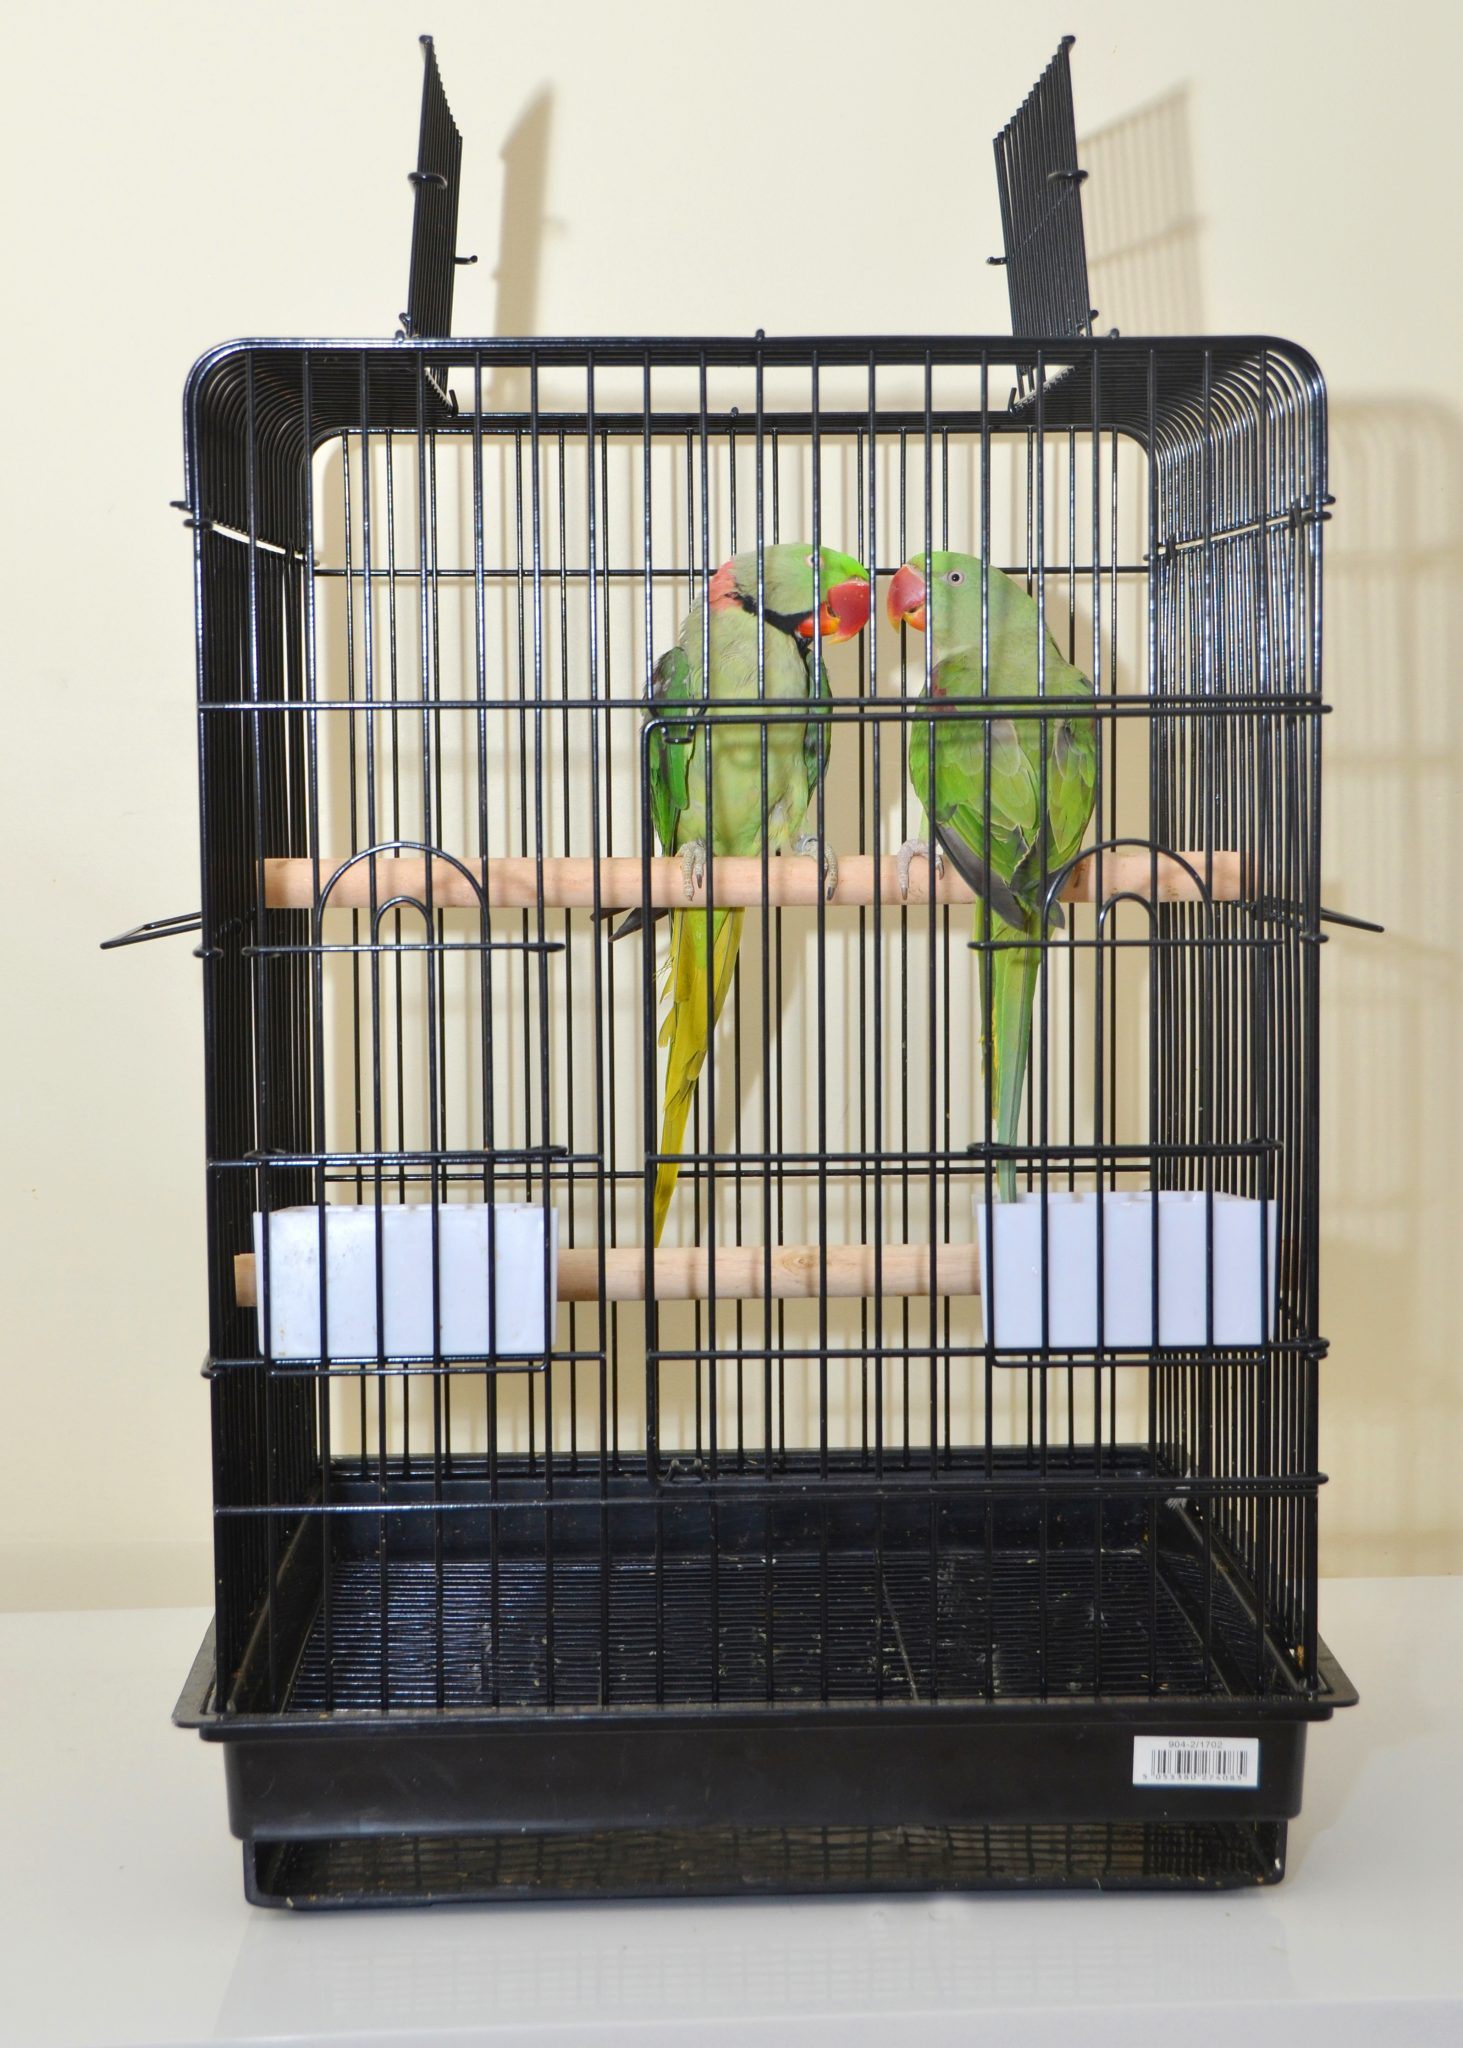 brand-new-good-size-cage birds4u.net